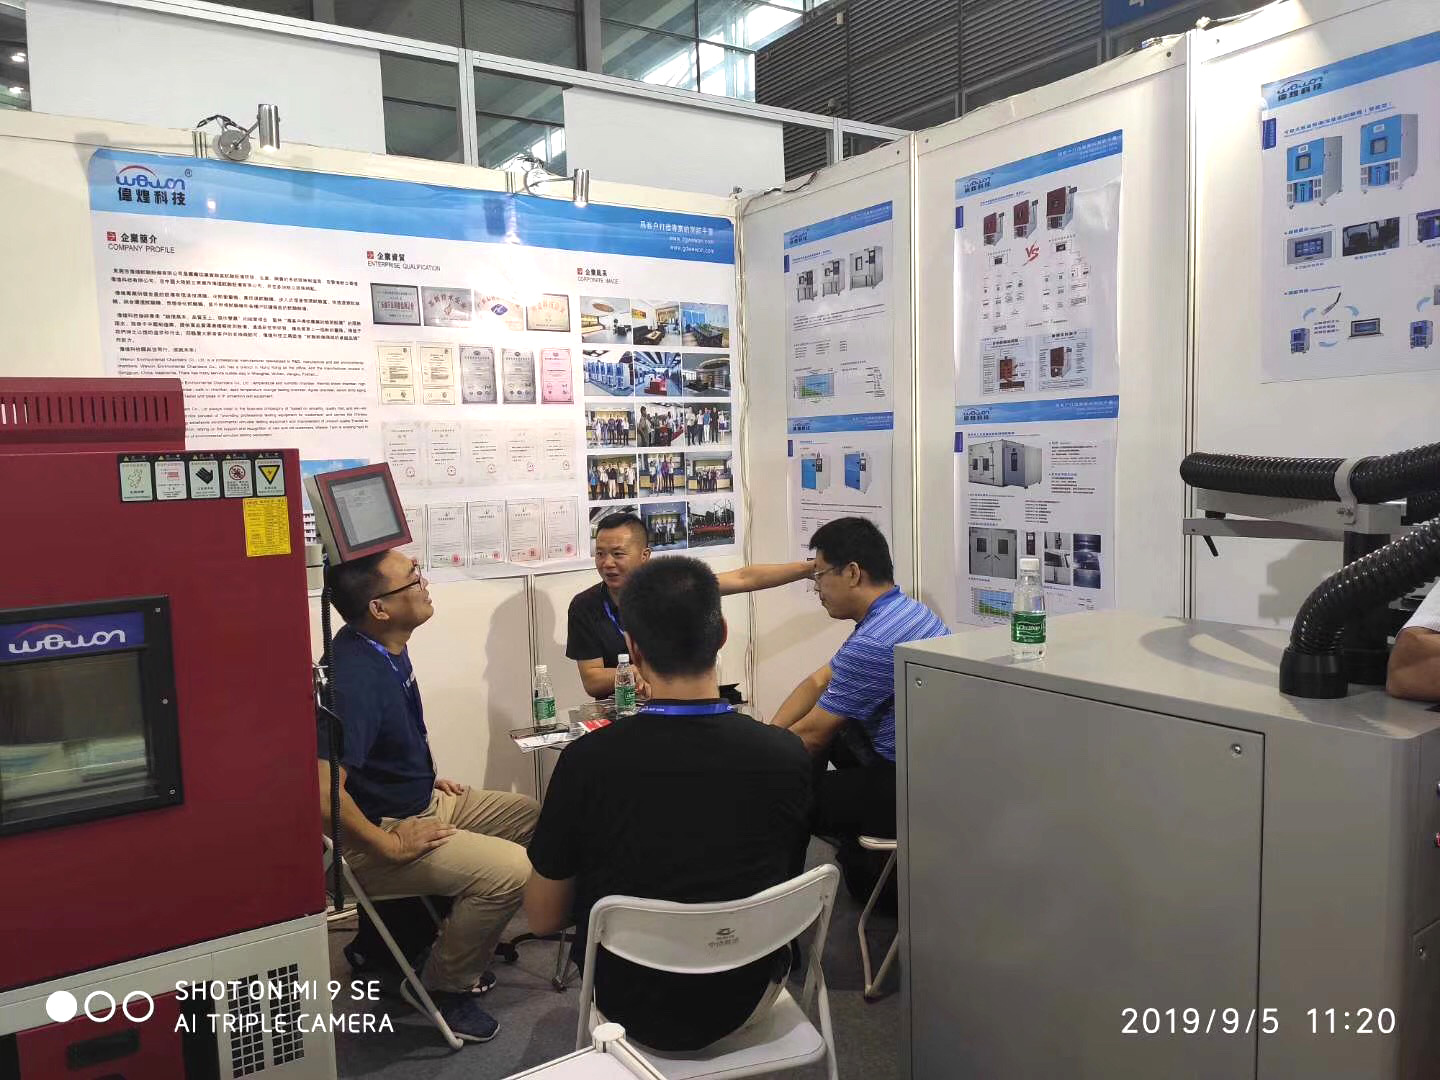 Wewon Environmental Chambers Co., Ltd. has attend the China International Optoelectronic Exposition CIOE from September 04, 2019 until September 07, 2019.